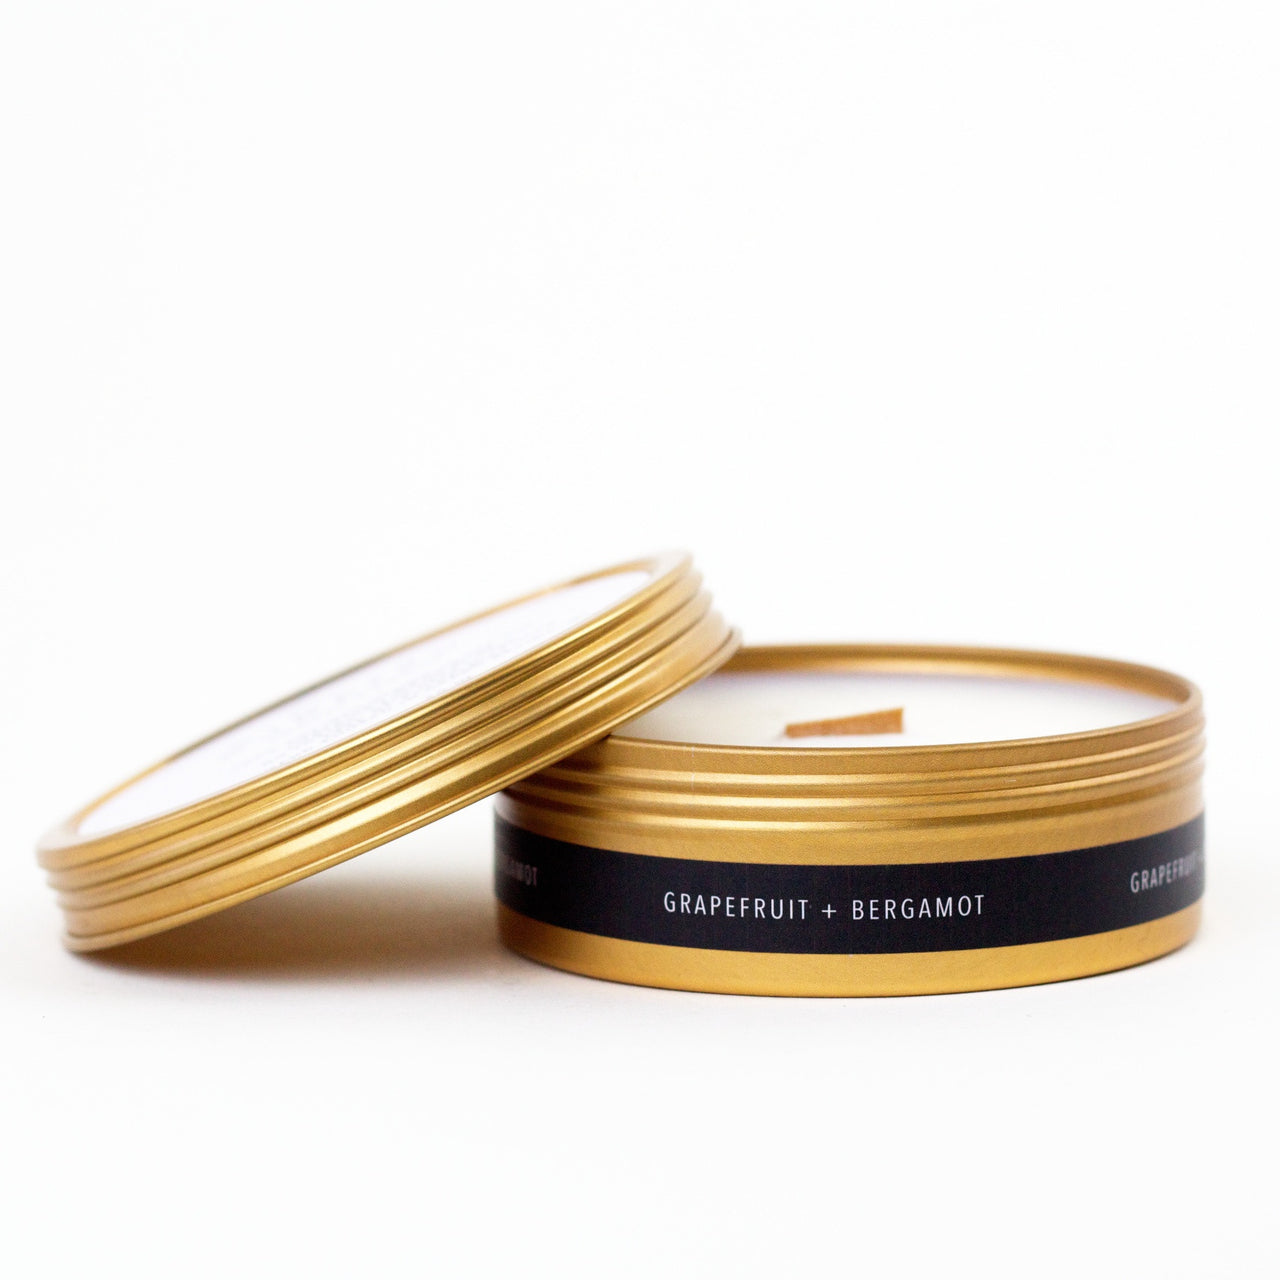 Grapefruit + Bergamot Soy Travel Candle